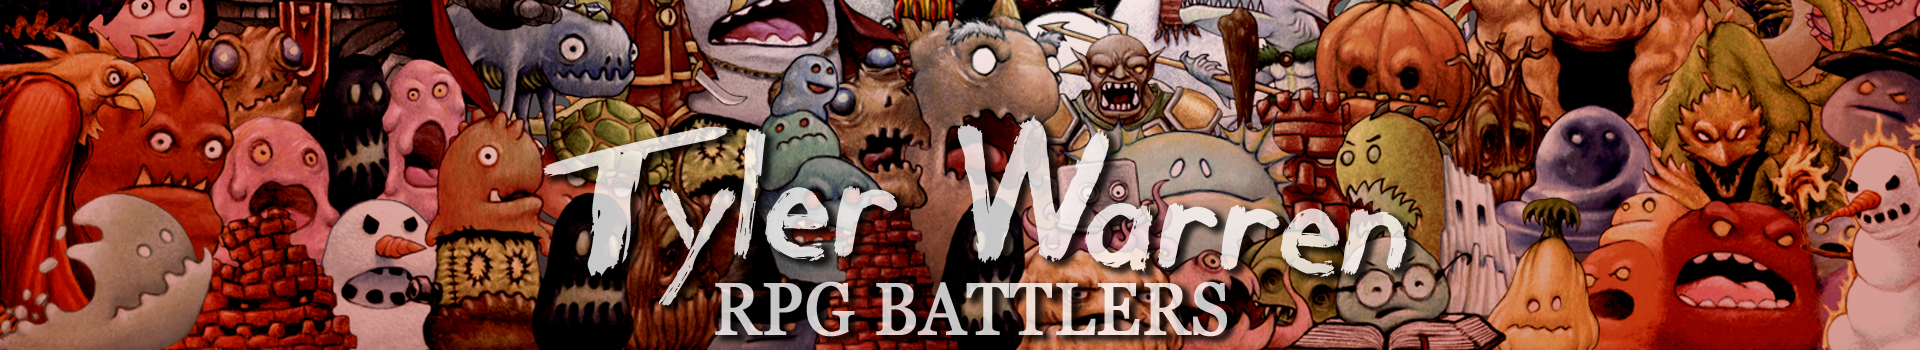 Tyler Warren RPG Battlers - 5th 50 Monsters